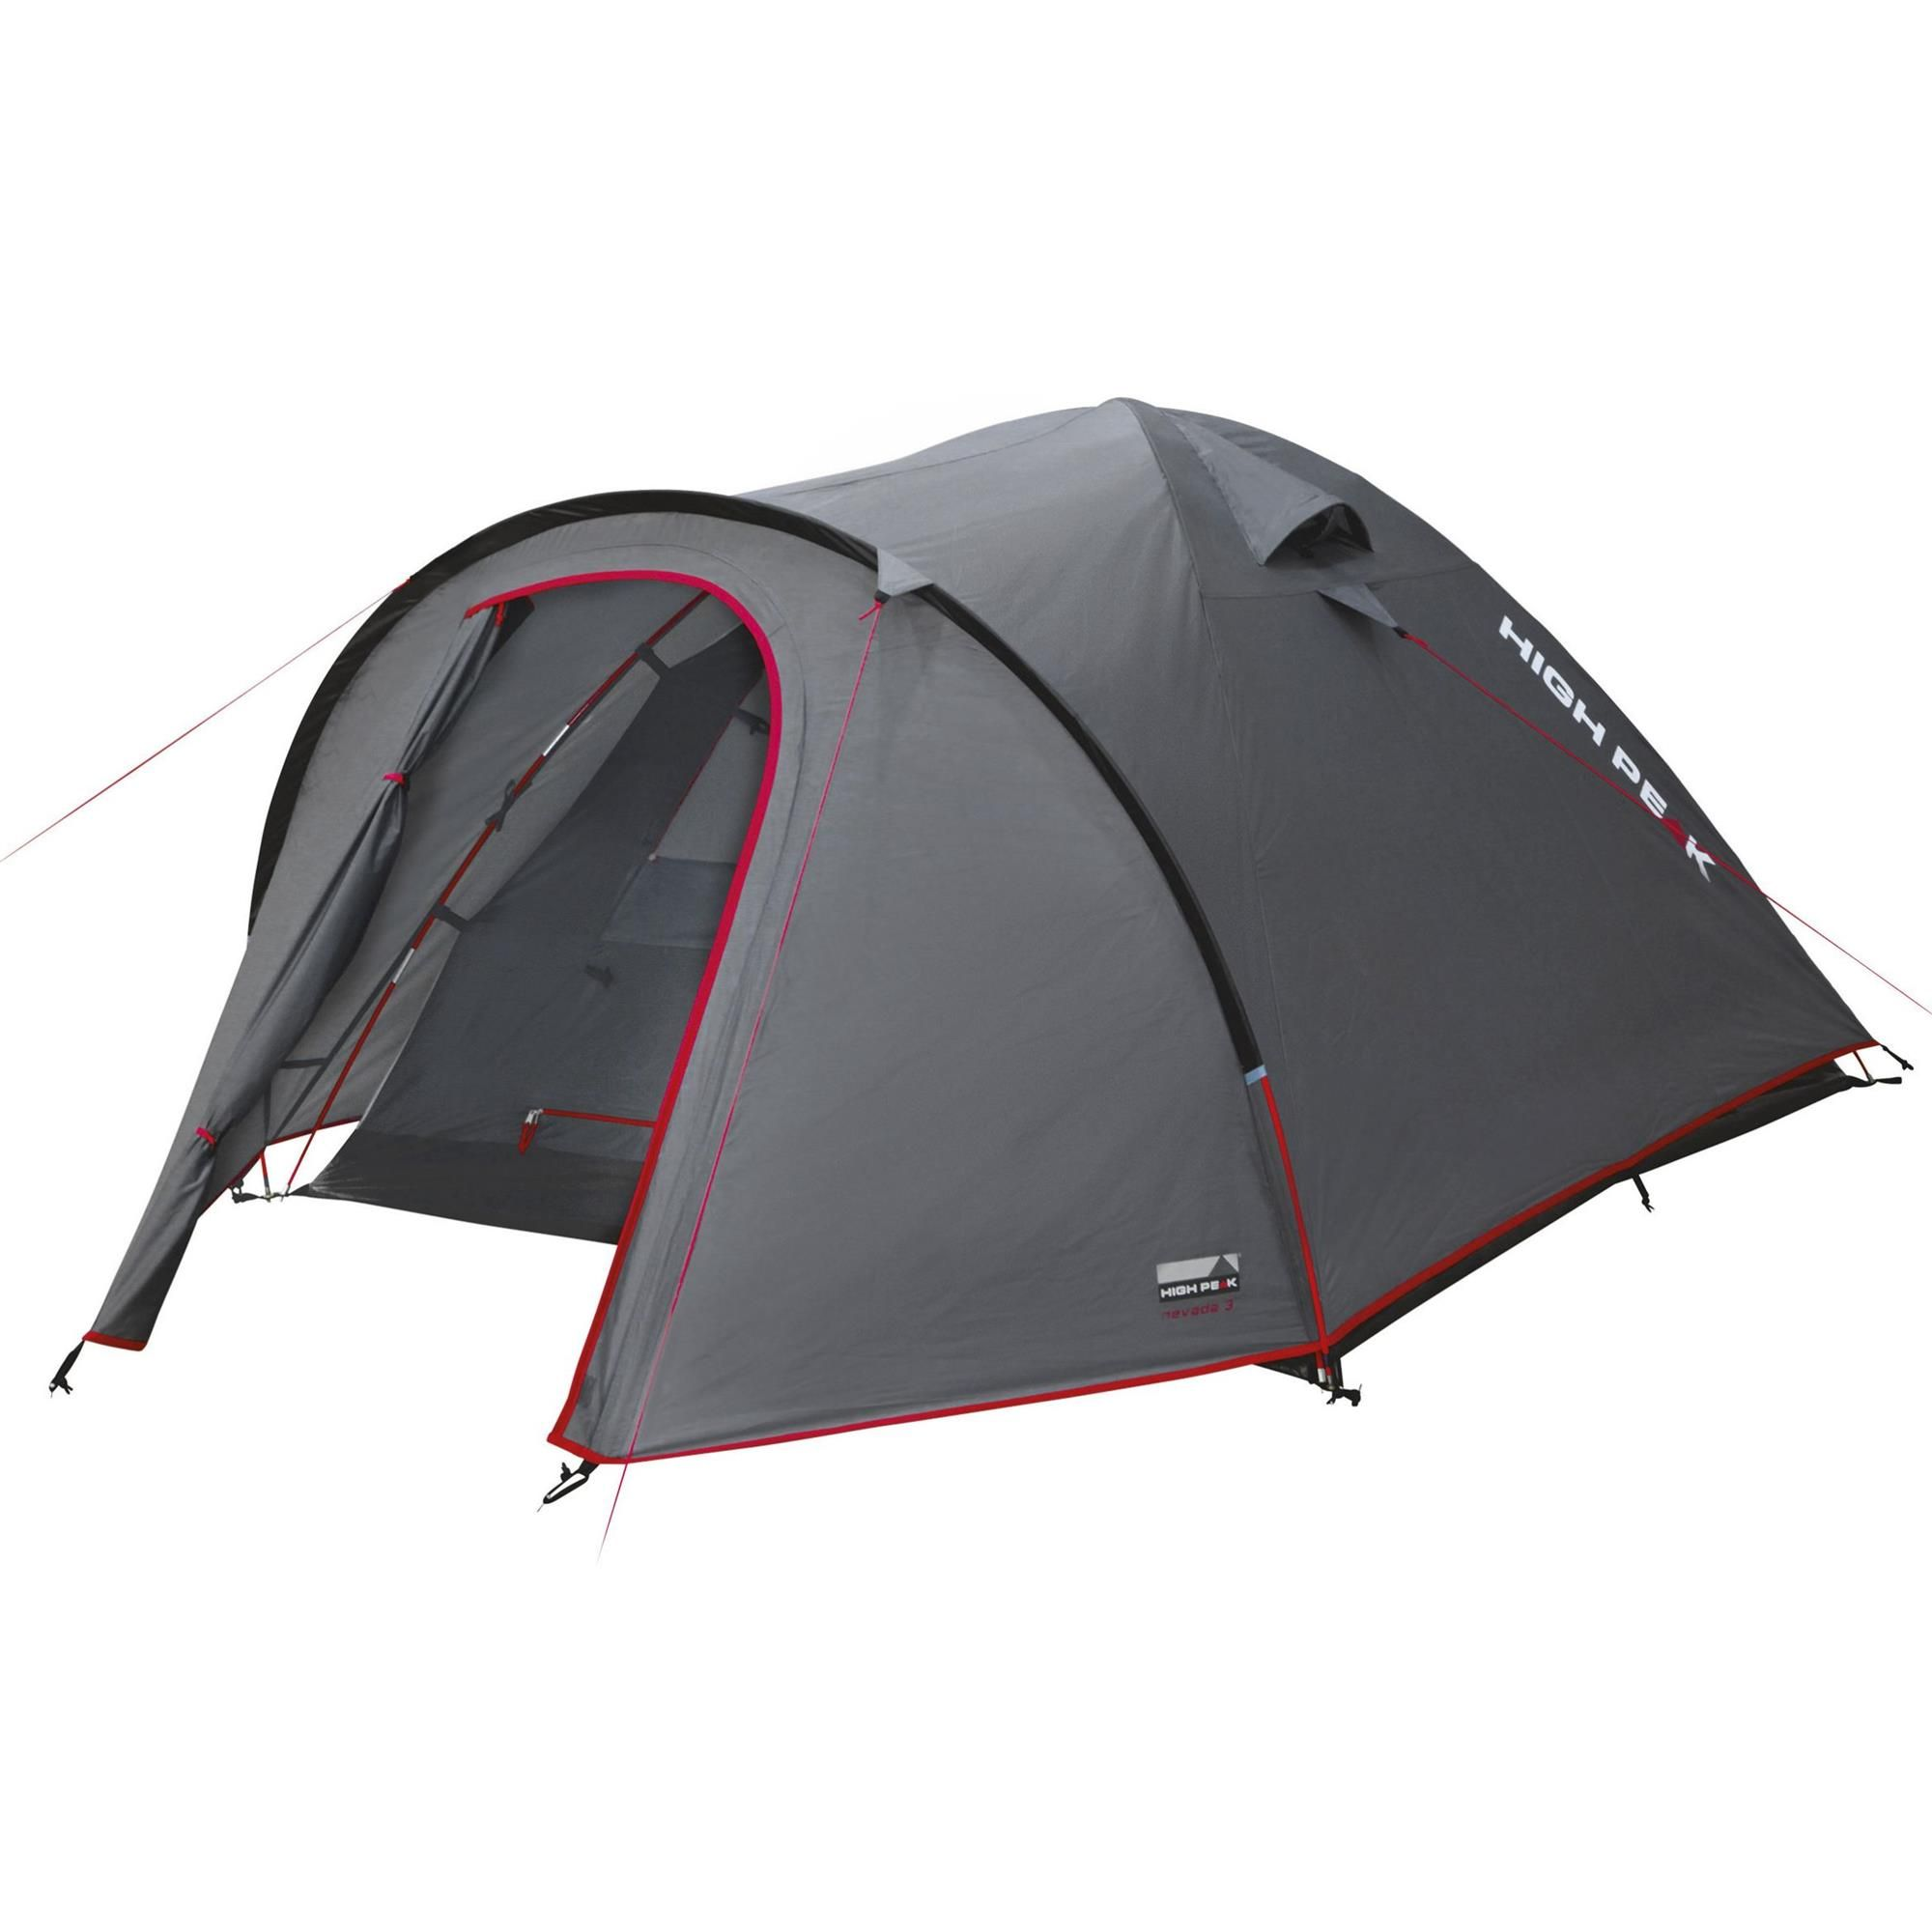 Xtend-Angebote High Peak Nevada 2 Canpingzelt grau: Category: Zelte > Campingzelte ohne Stehhöhe Item number: 20000336231 Price:…%#Outdoor%